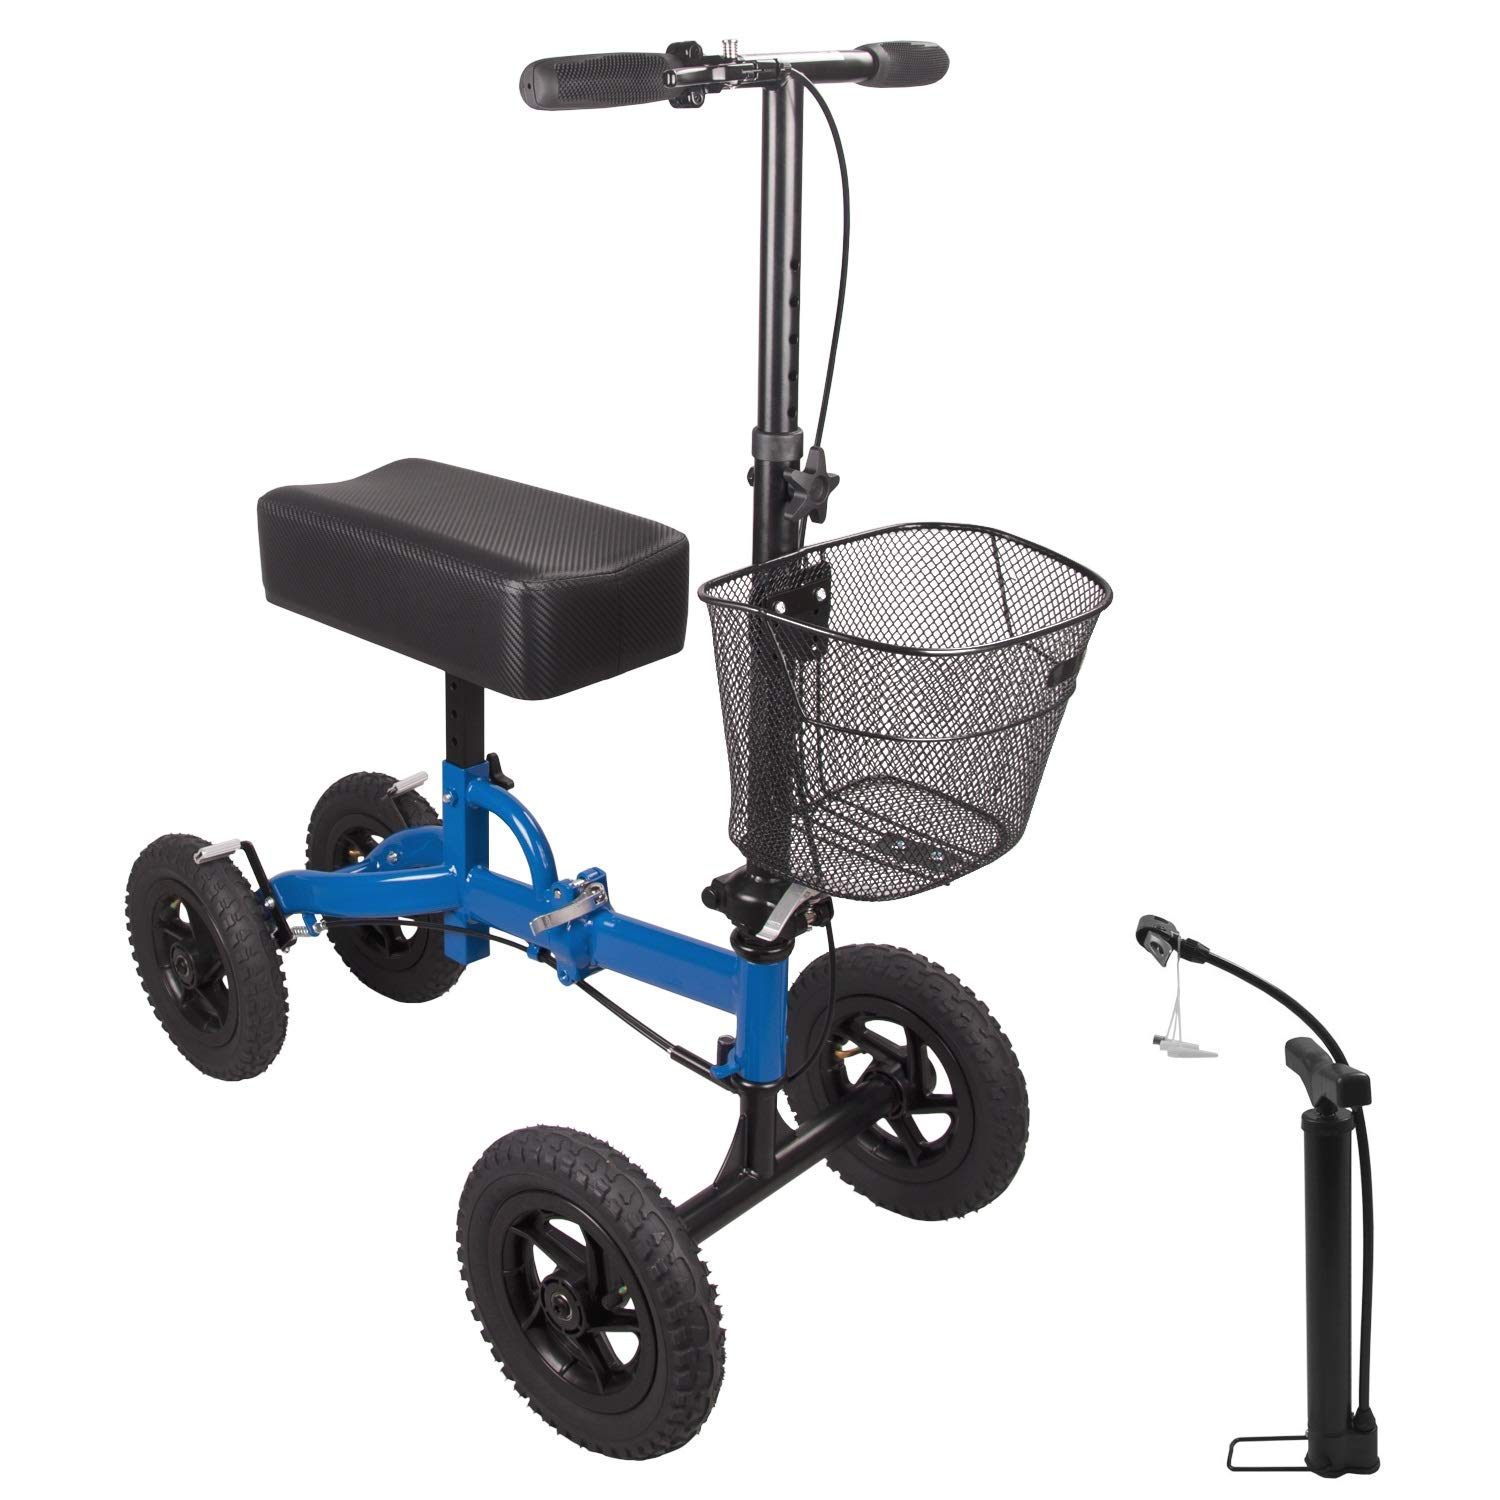 H&A All Terrain Rolling Knee Walker for Leg and Foot Injuries Crutch Steerable Alternative Medical Knee Scooter with Free Tire Pump (Blue) by H&A